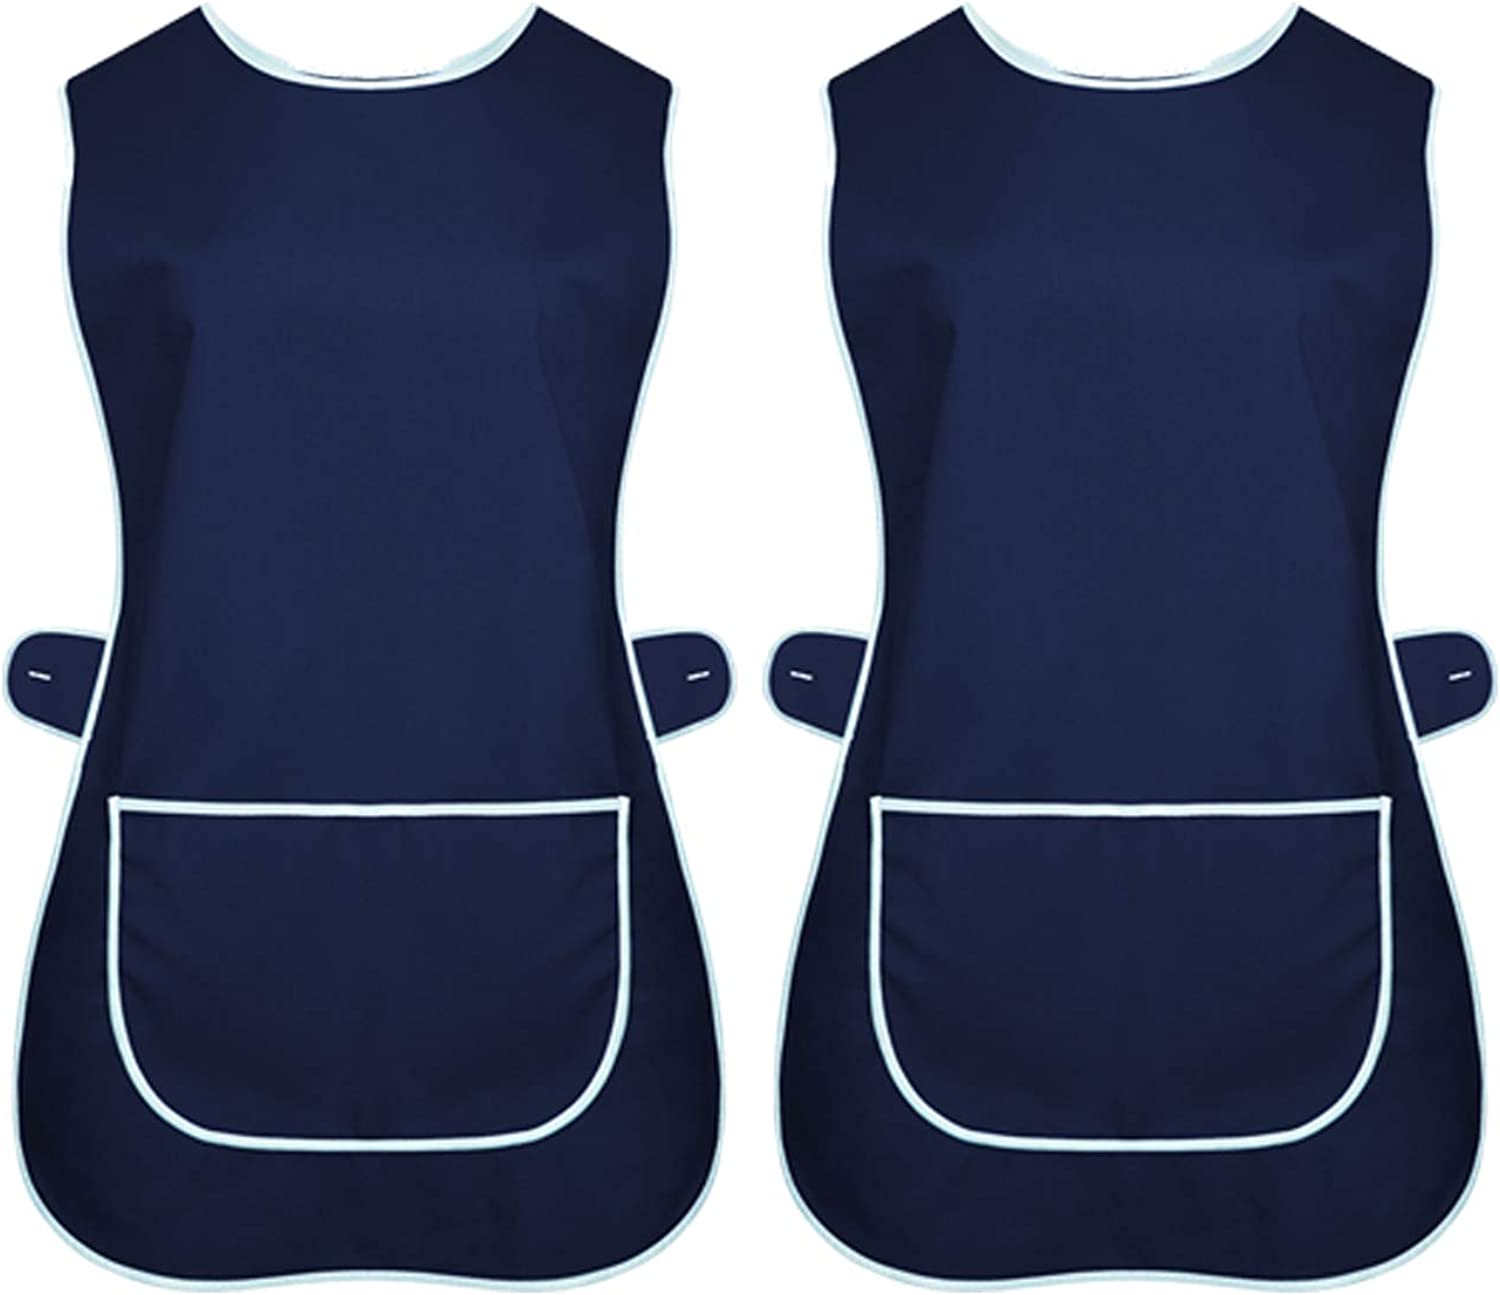 INDX-Clothing Pack of 2 Ladies Tabard Apron Kitchen Overall Catering TABBARD Cleaning Pocket